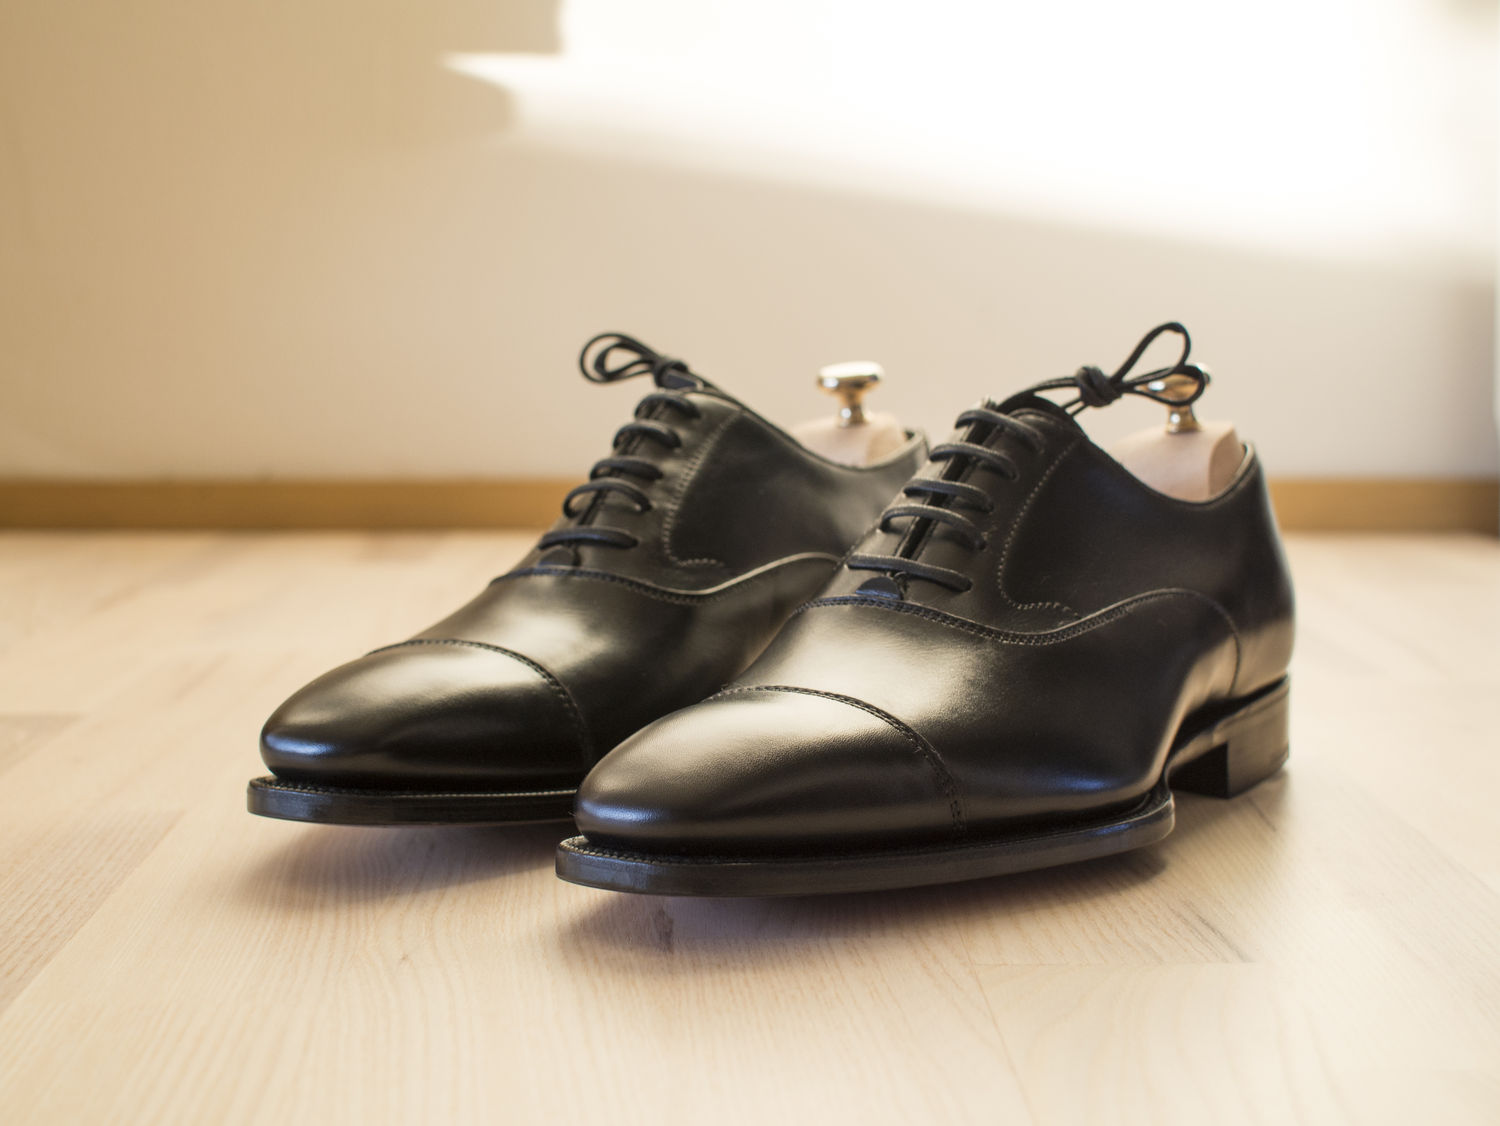 black_cap_toe_oxford_s1500x0_q80_noupscale